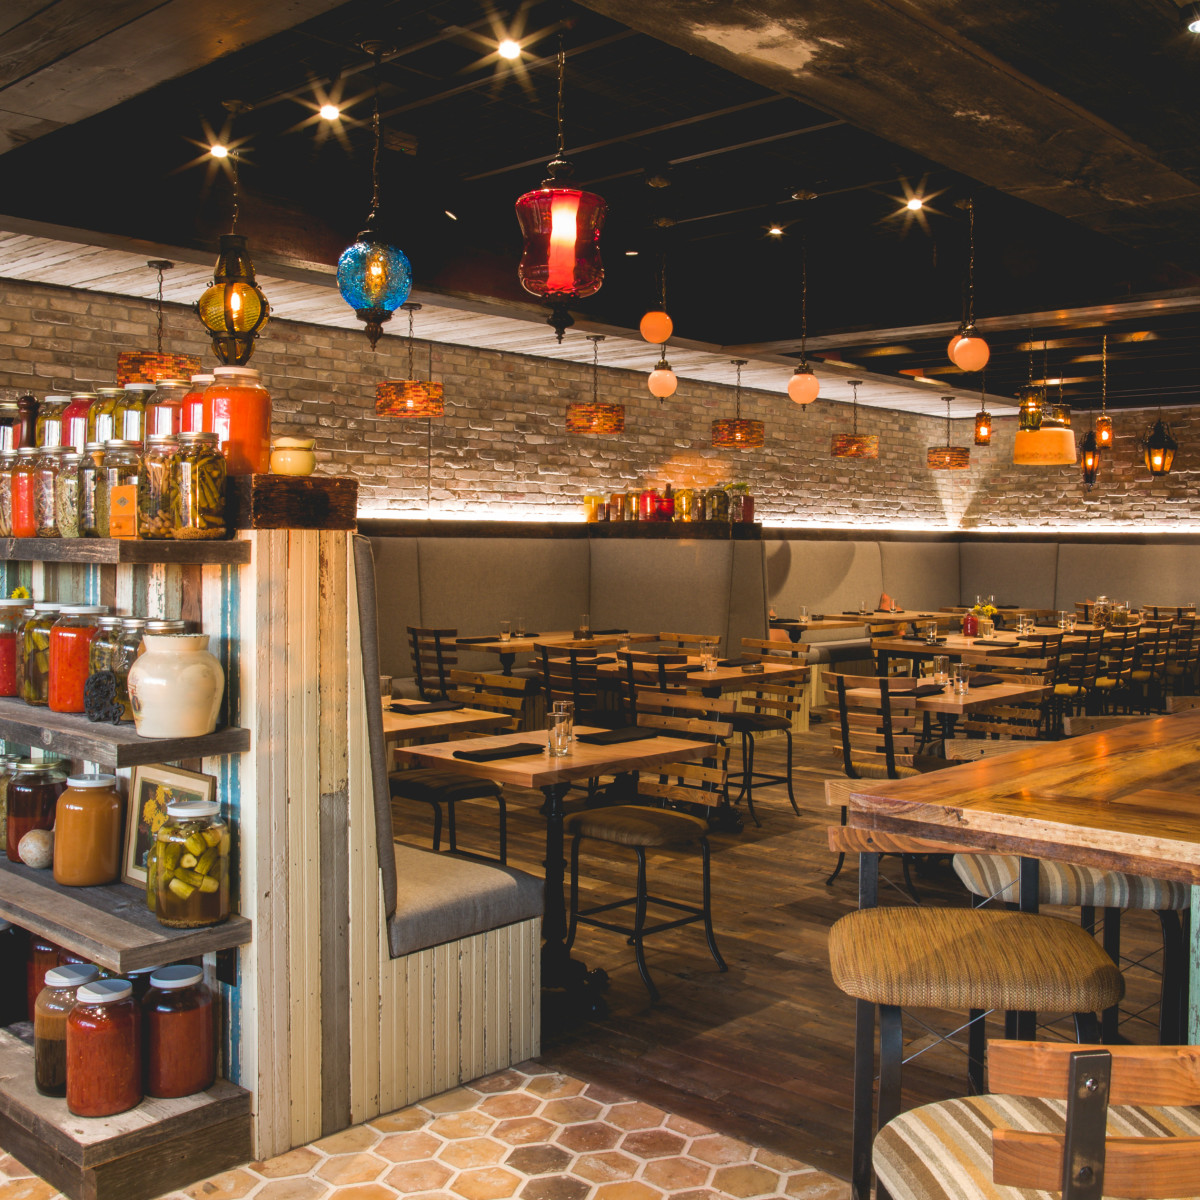 Barley Swine Burnet Road north interior seating bar January 2016